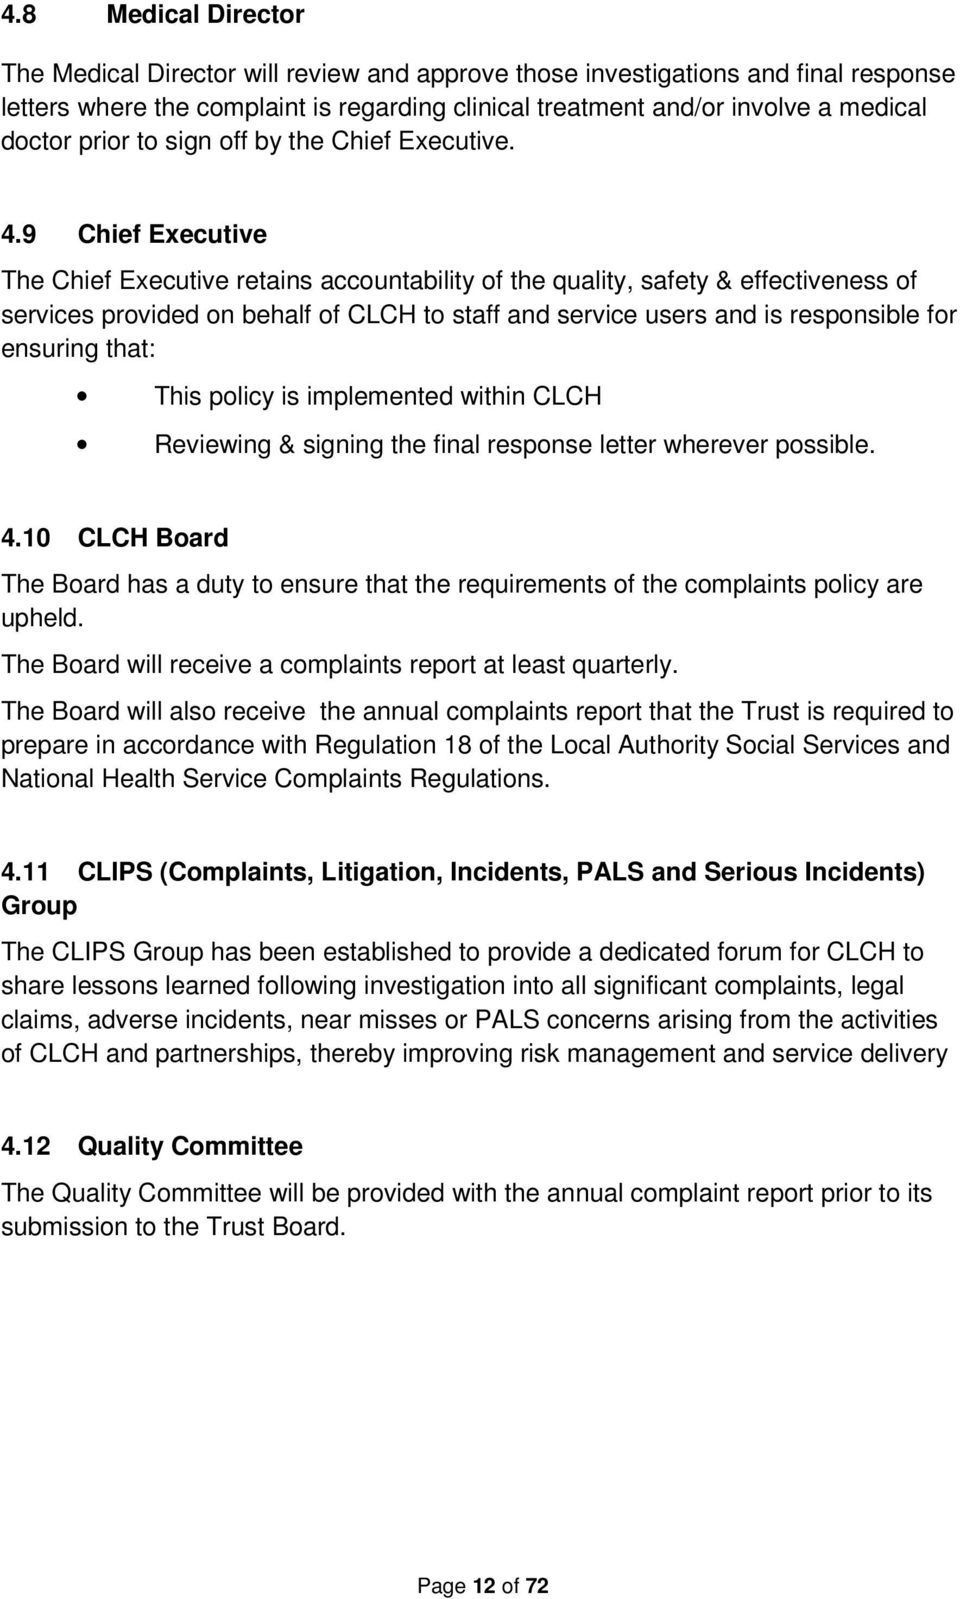 9 Chief Executive The Chief Executive retains accountability of the quality, safety & effectiveness of services provided on behalf of CLCH to staff and service users and is responsible for ensuring